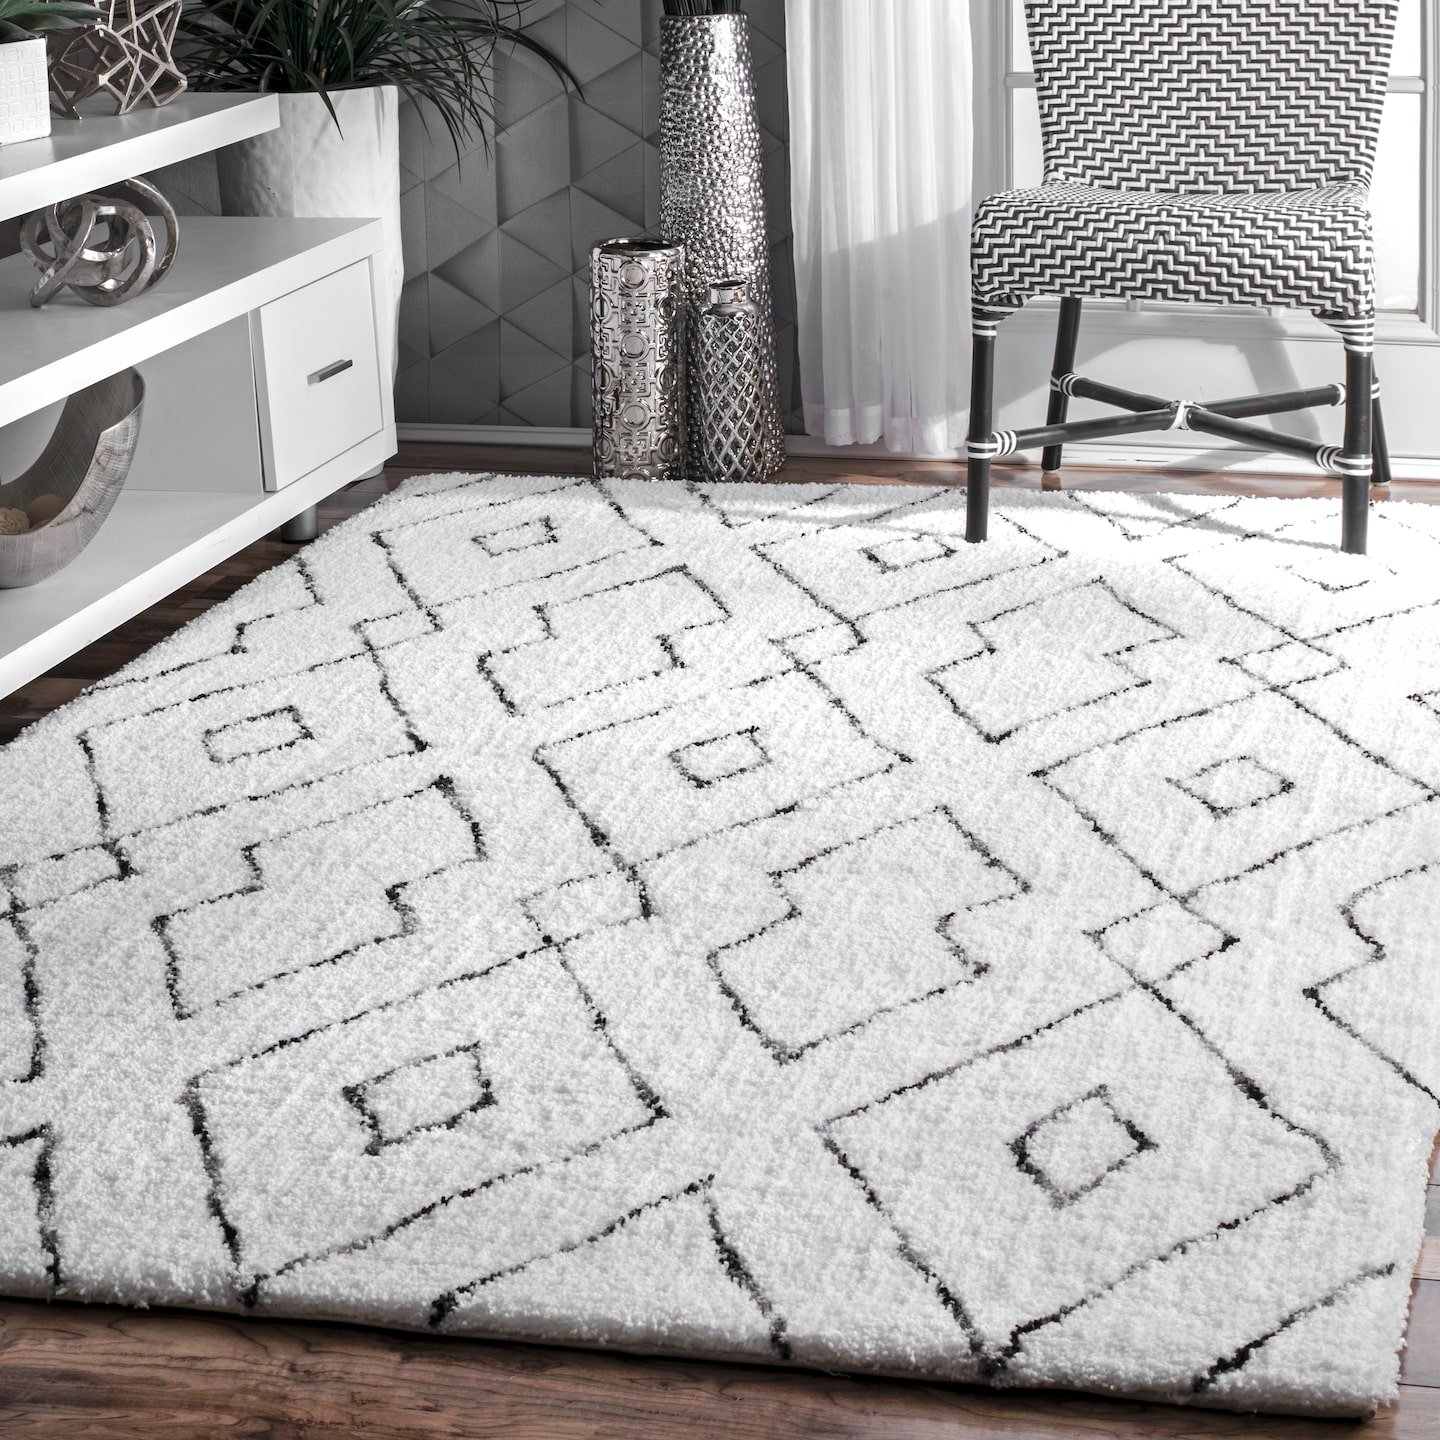 white and grey diamond boho rug